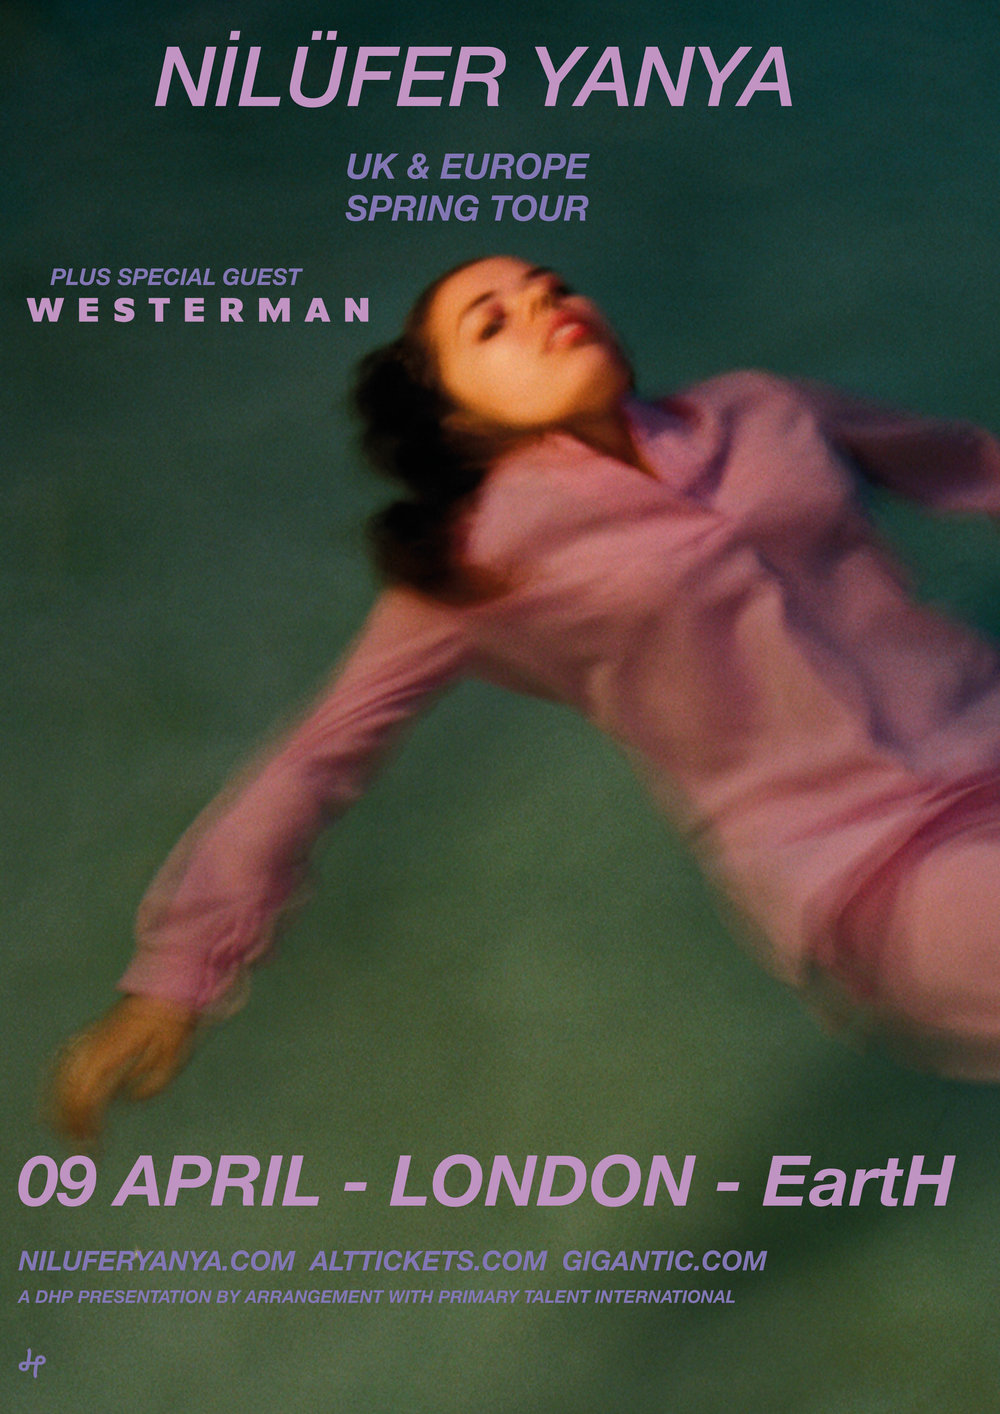 nilufer_yanya_2019_london.jpg